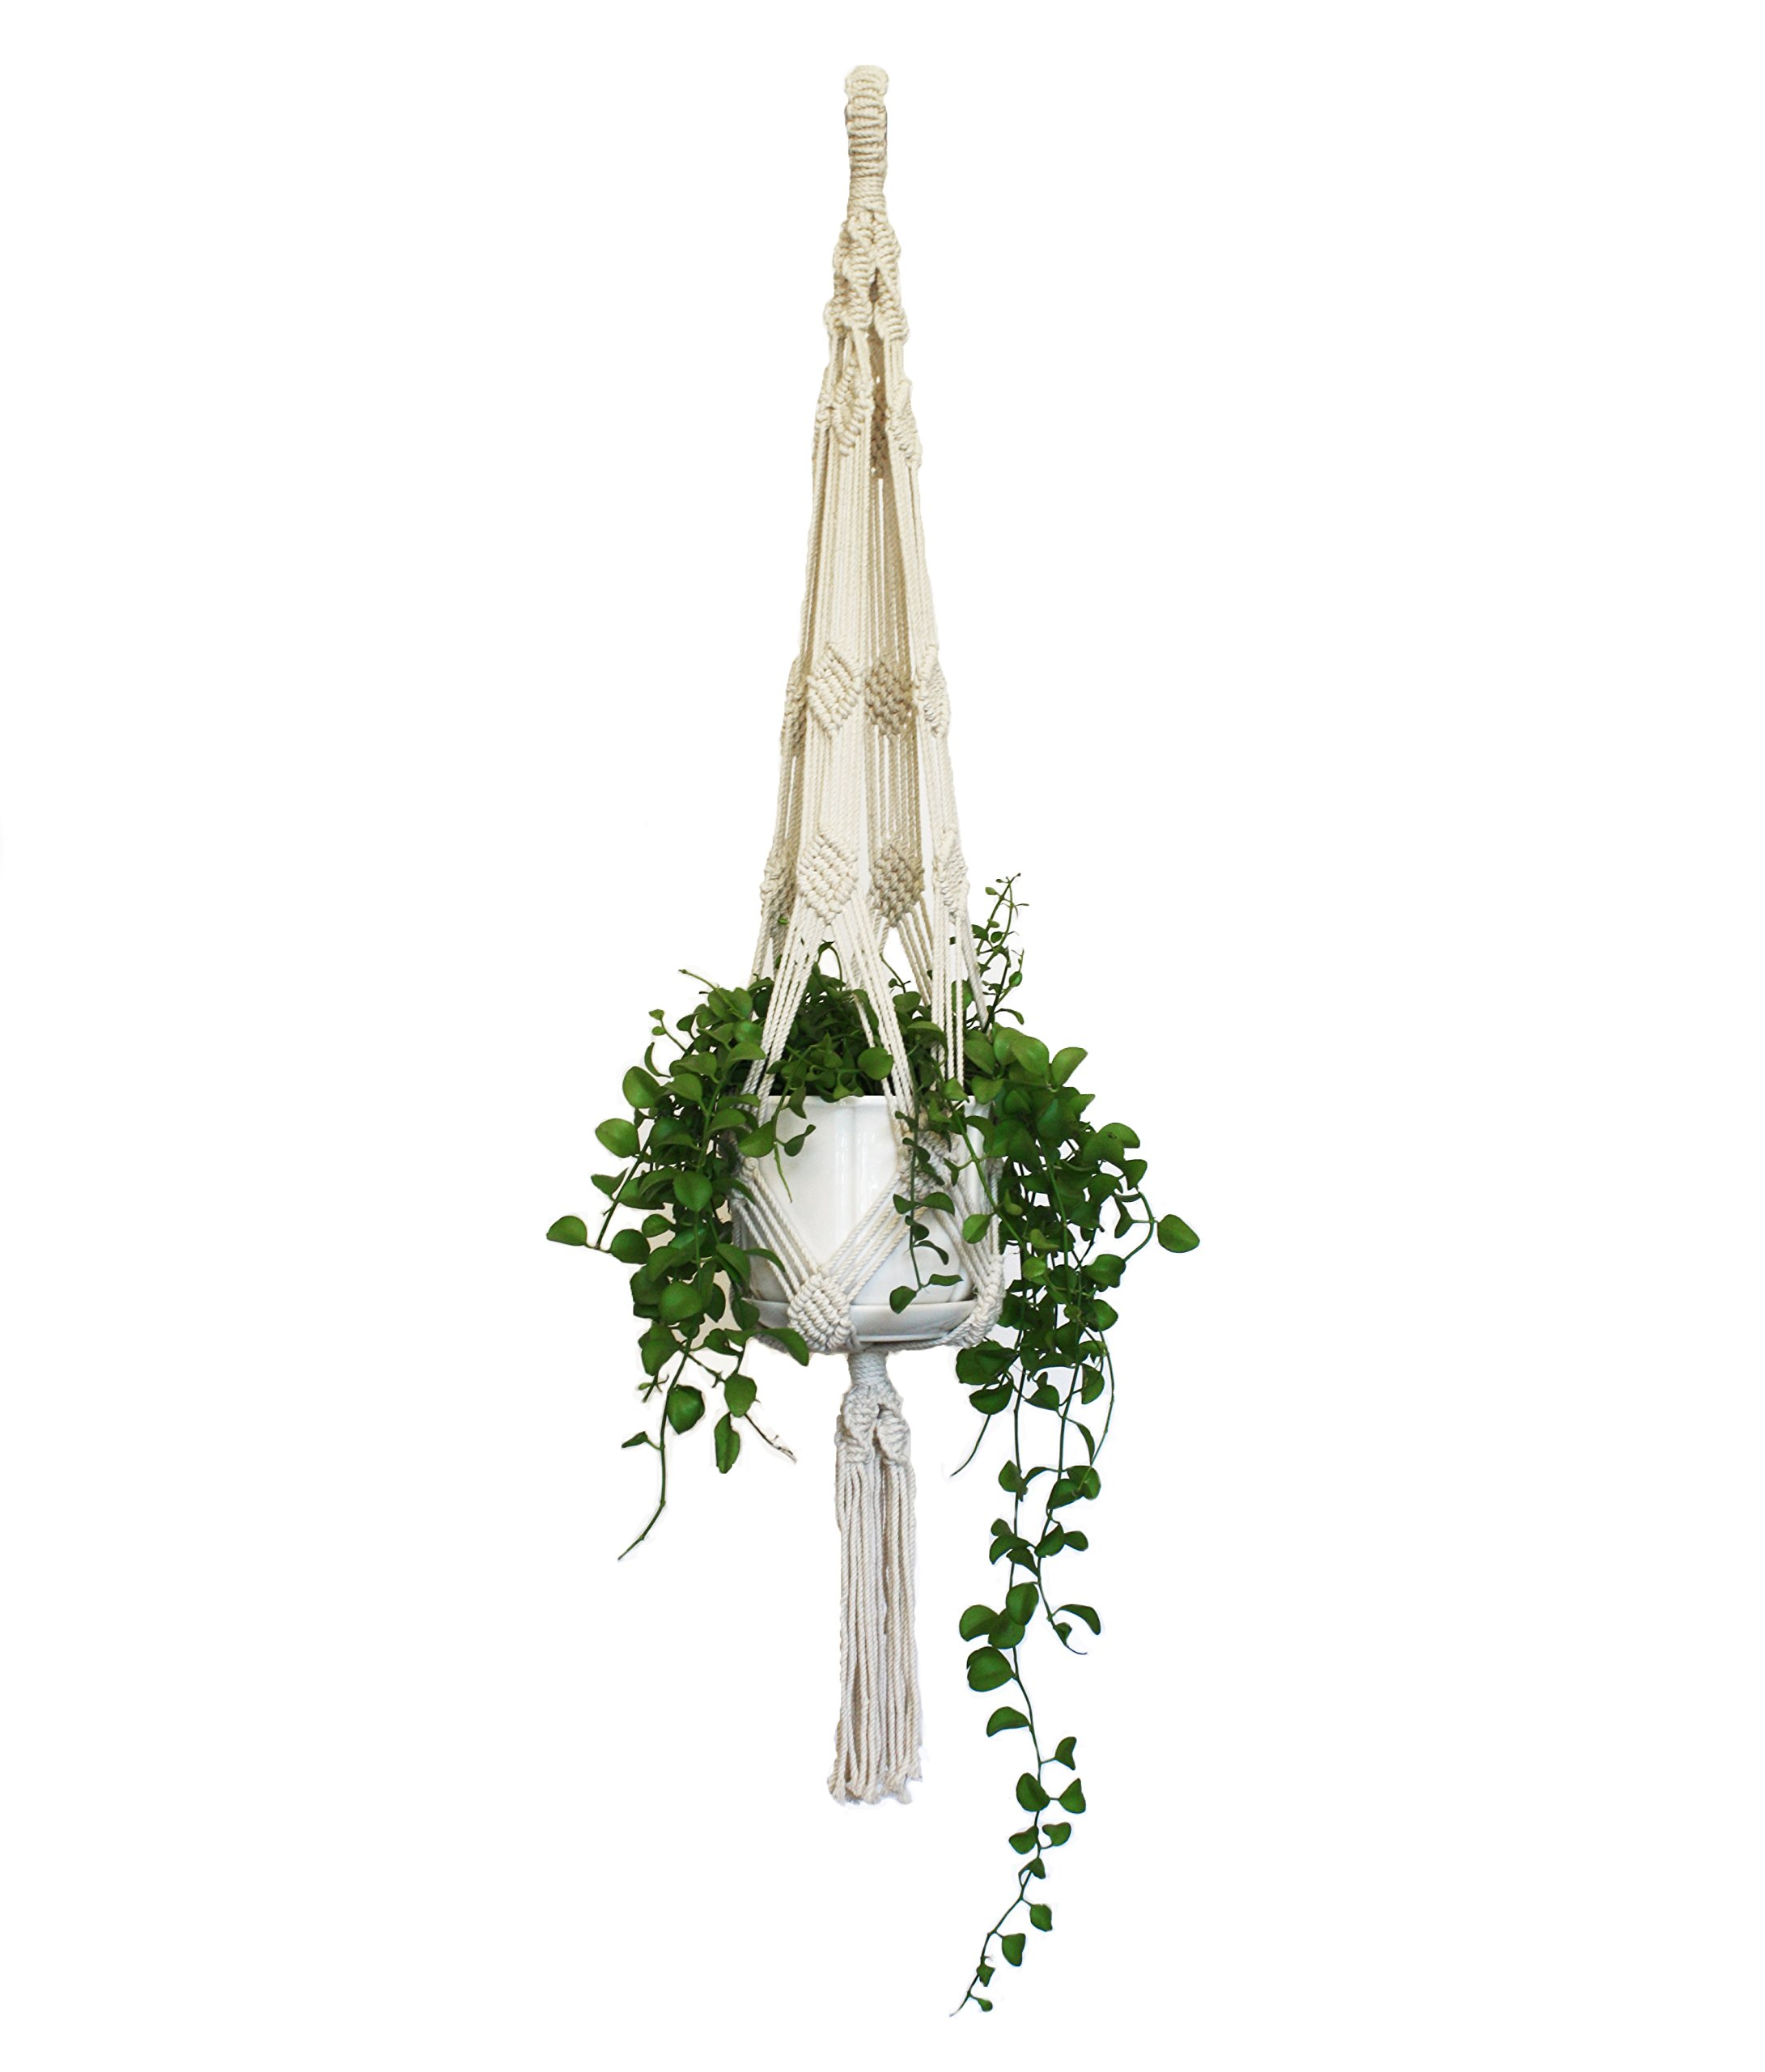 Macrame Plant Hanger - Handmade Hangers from Natural Cotton Rope - Large White 40 inch - for Hanging Plants Indoor, Outdoor - Modern, Boho, Art Décor Plant Holders by Discara by Discara